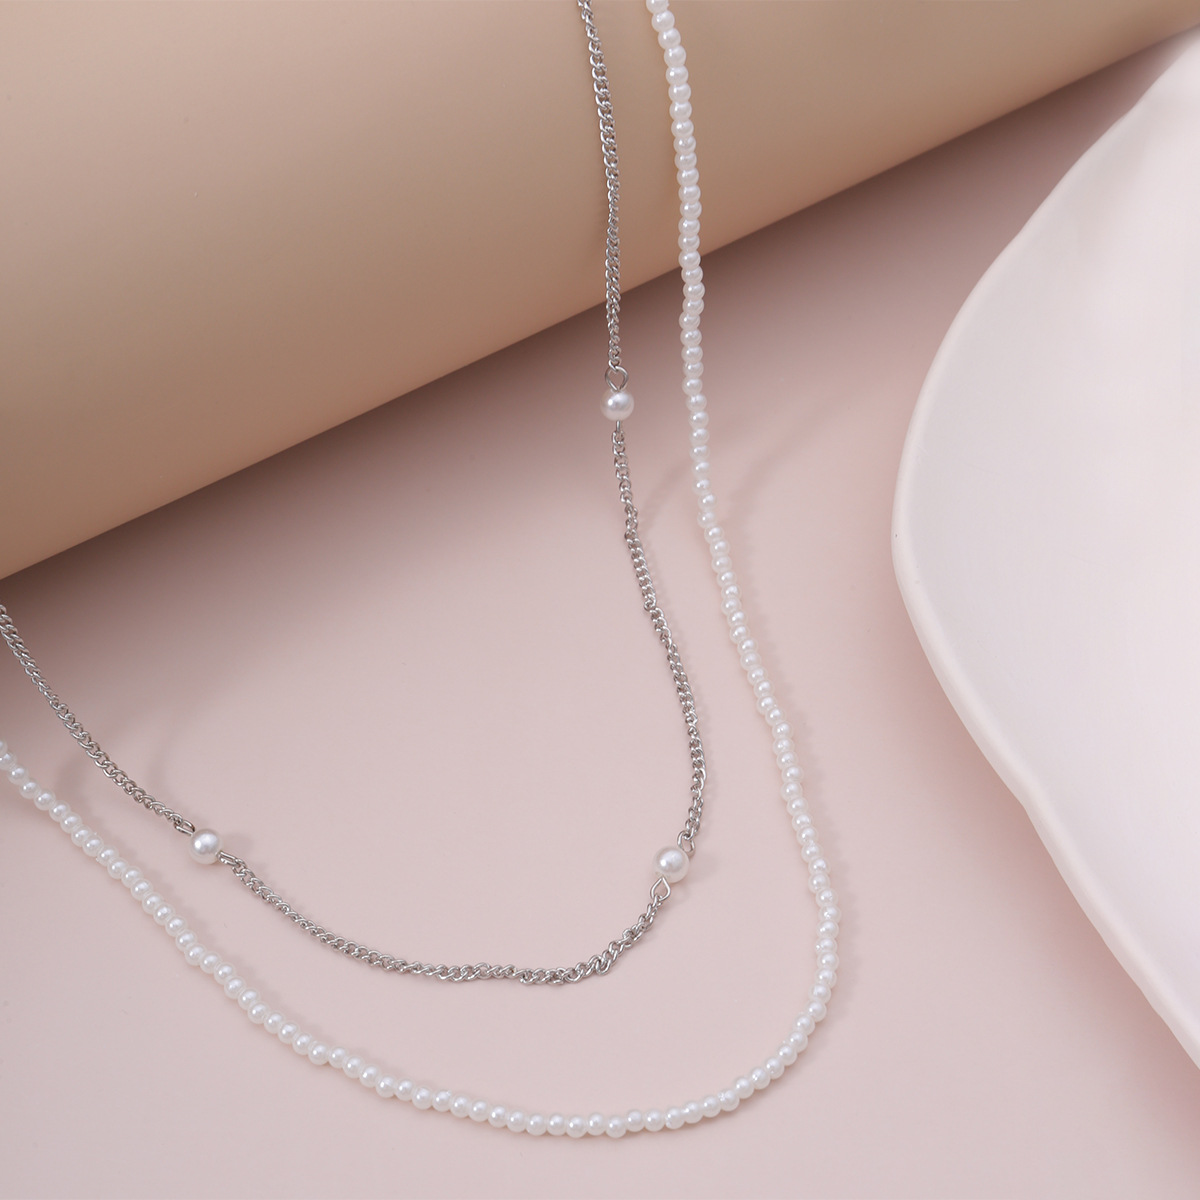 fashion jewelry wild street shot double-layer beaded jewelry fashion handmade imitation pearl chain glasses chain wholesale nihaojewelry NHXR228286